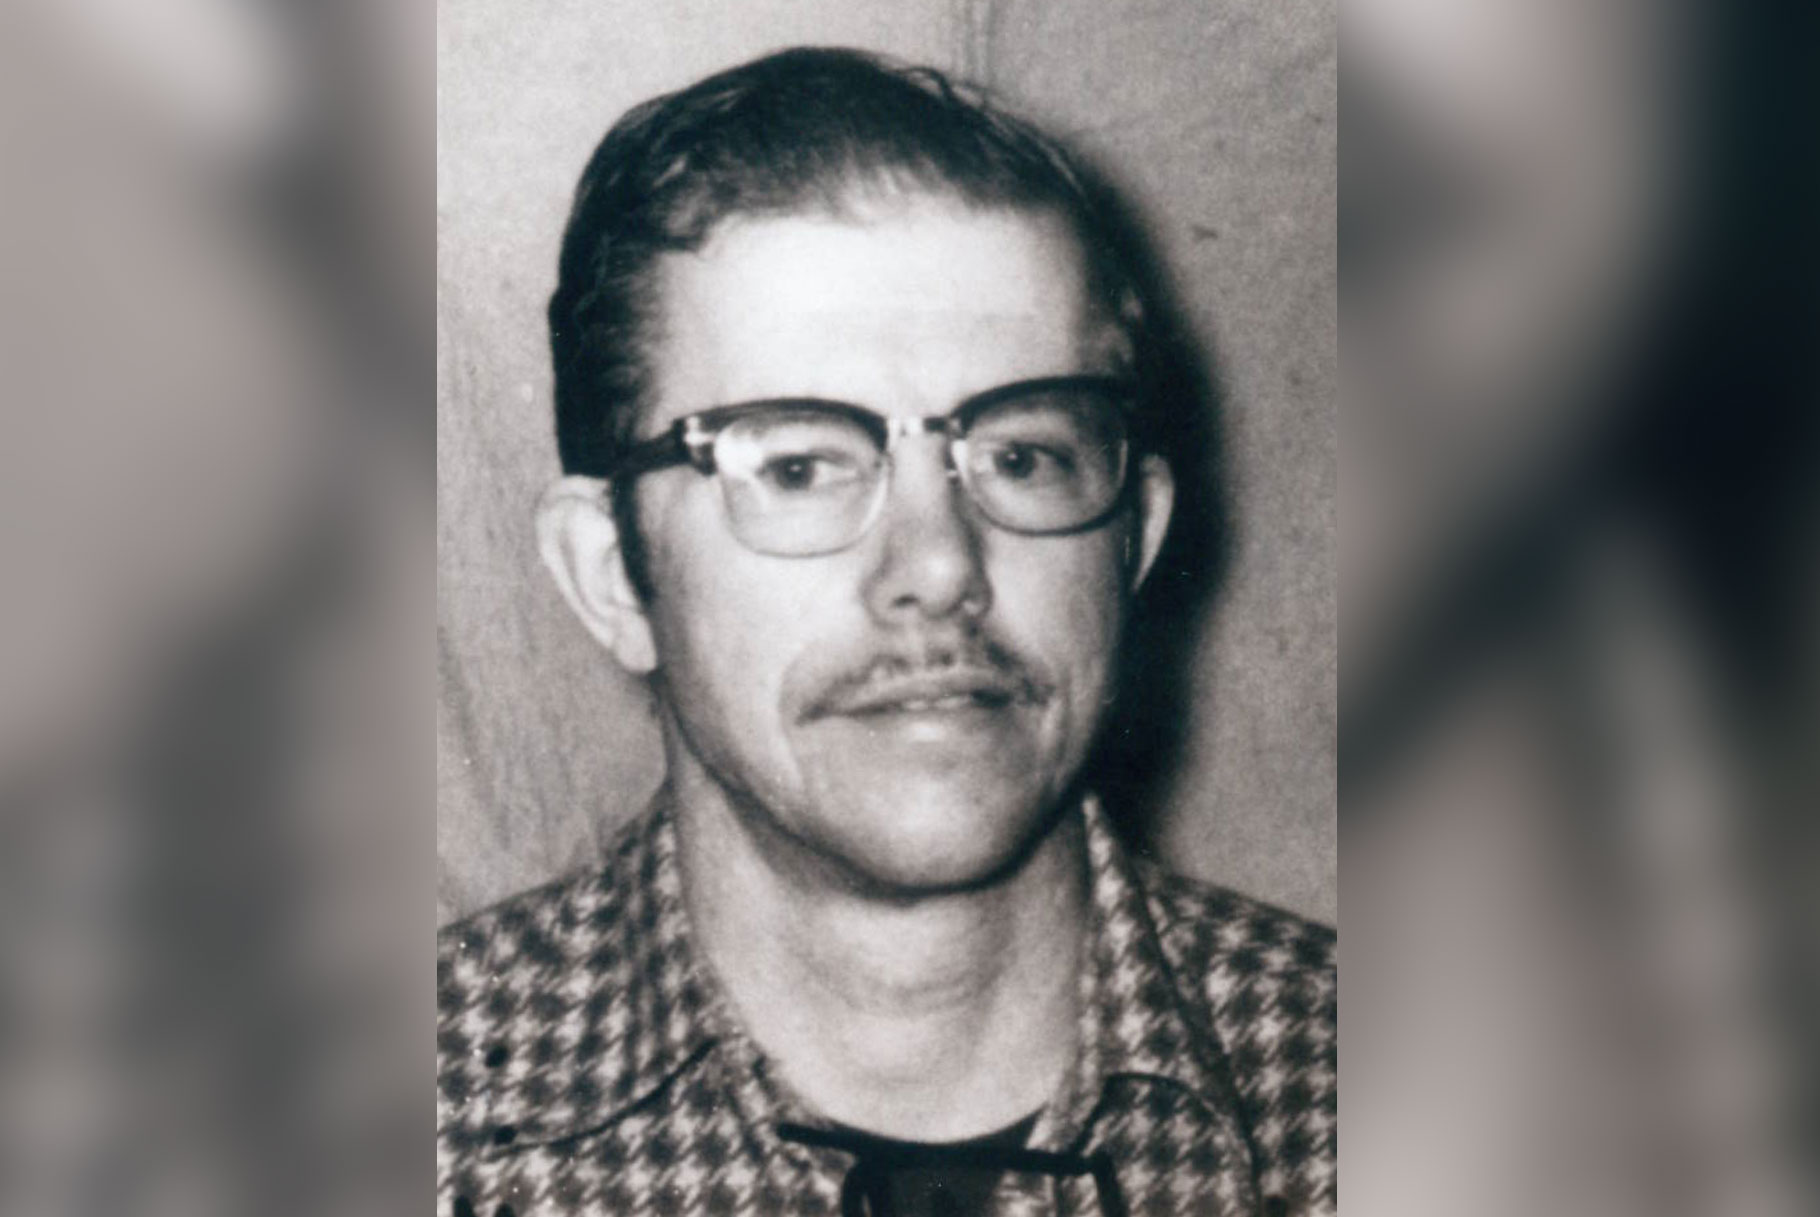 Robert Hansen, 'The Butcher Baker' Serial Killer: Who He Killed ...